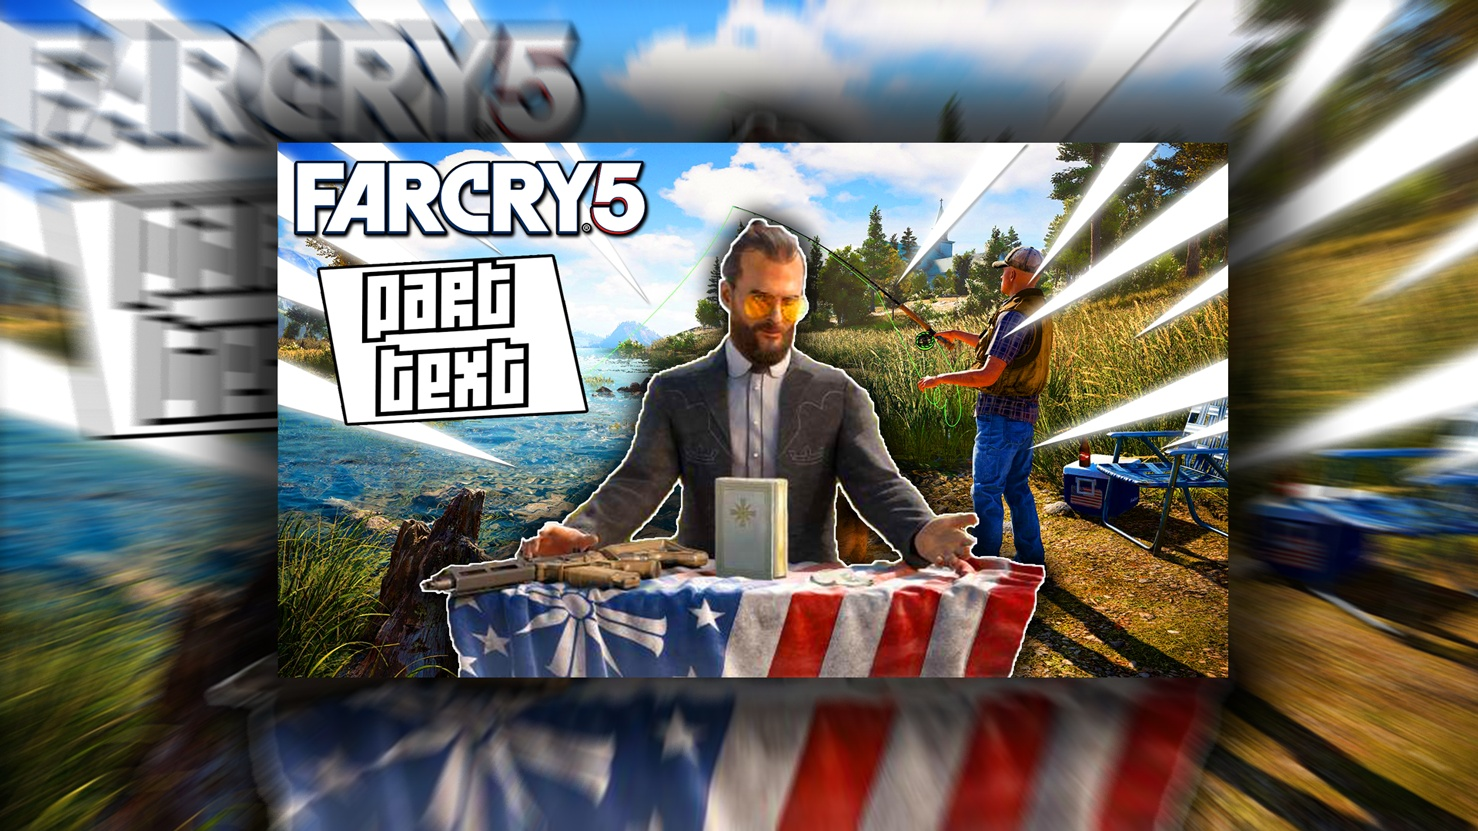 Far Cry 5 Thumbnail Template - PSD